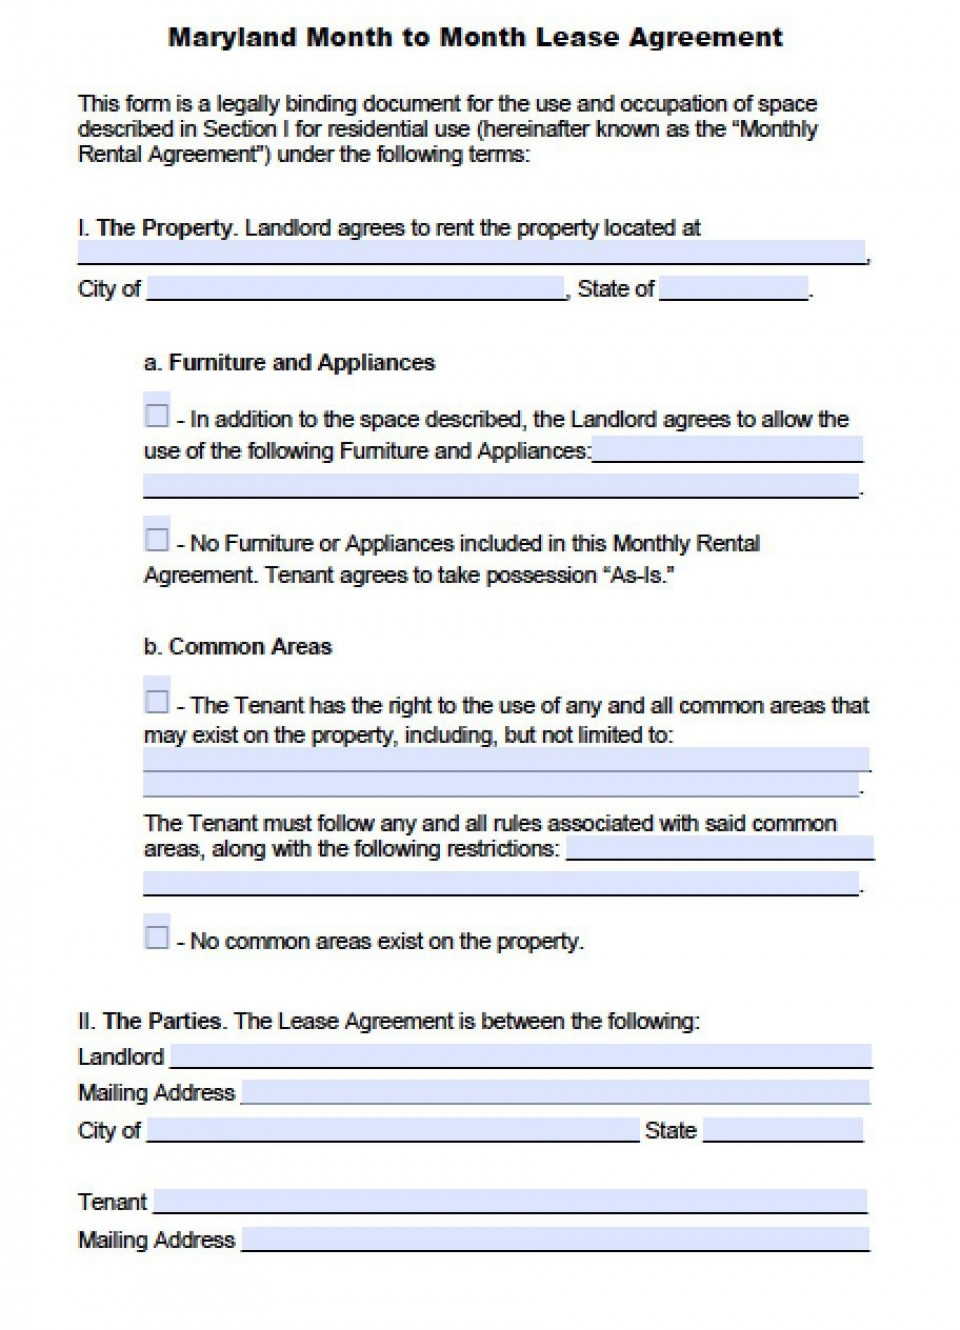 004 Fearsome Generic Rental Lease Agreement Md Picture  Sample Maryland960